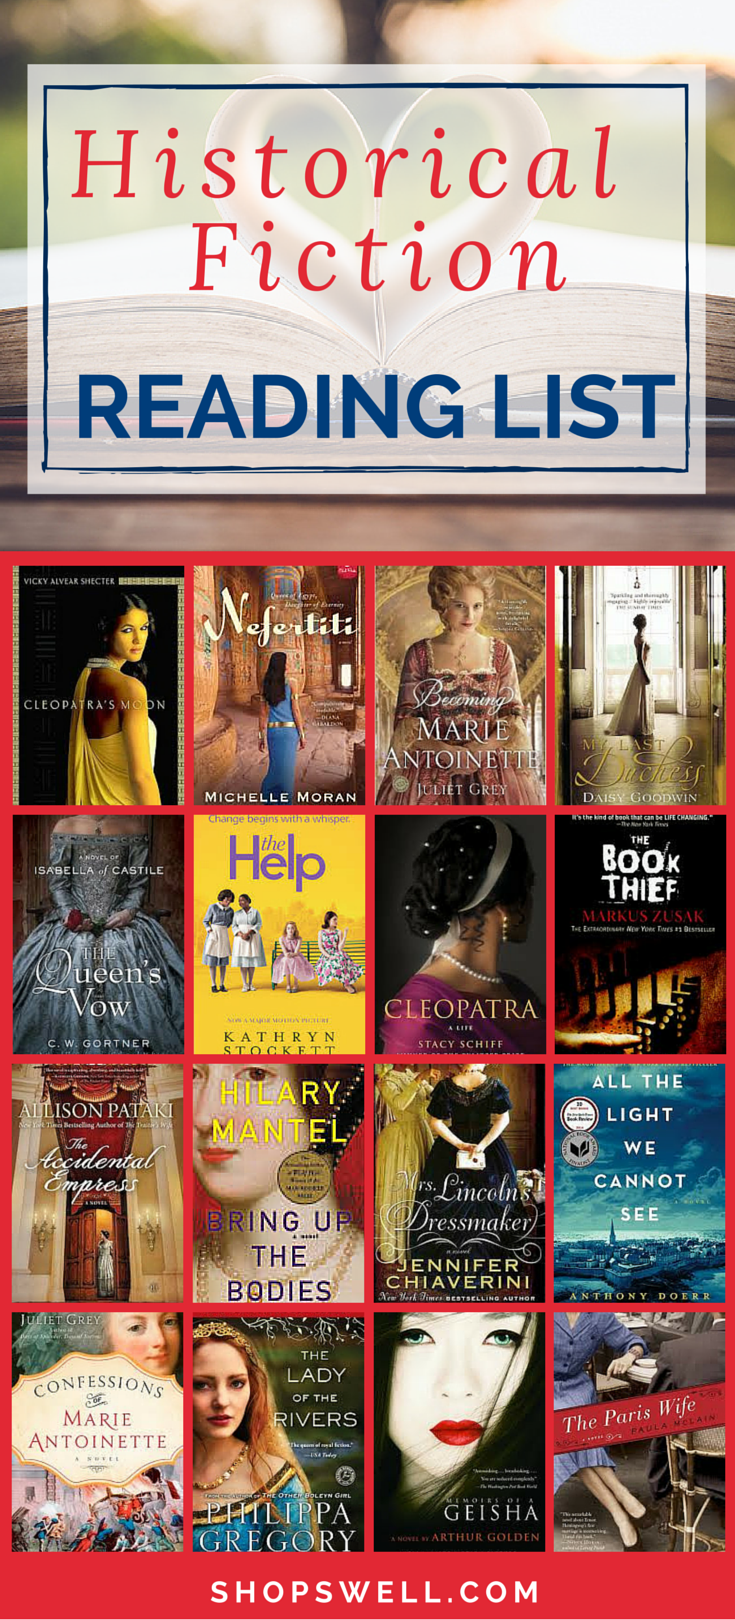 The Best Books Of 2014, According To Goodreads Users  Diana, The Reader  And Over The